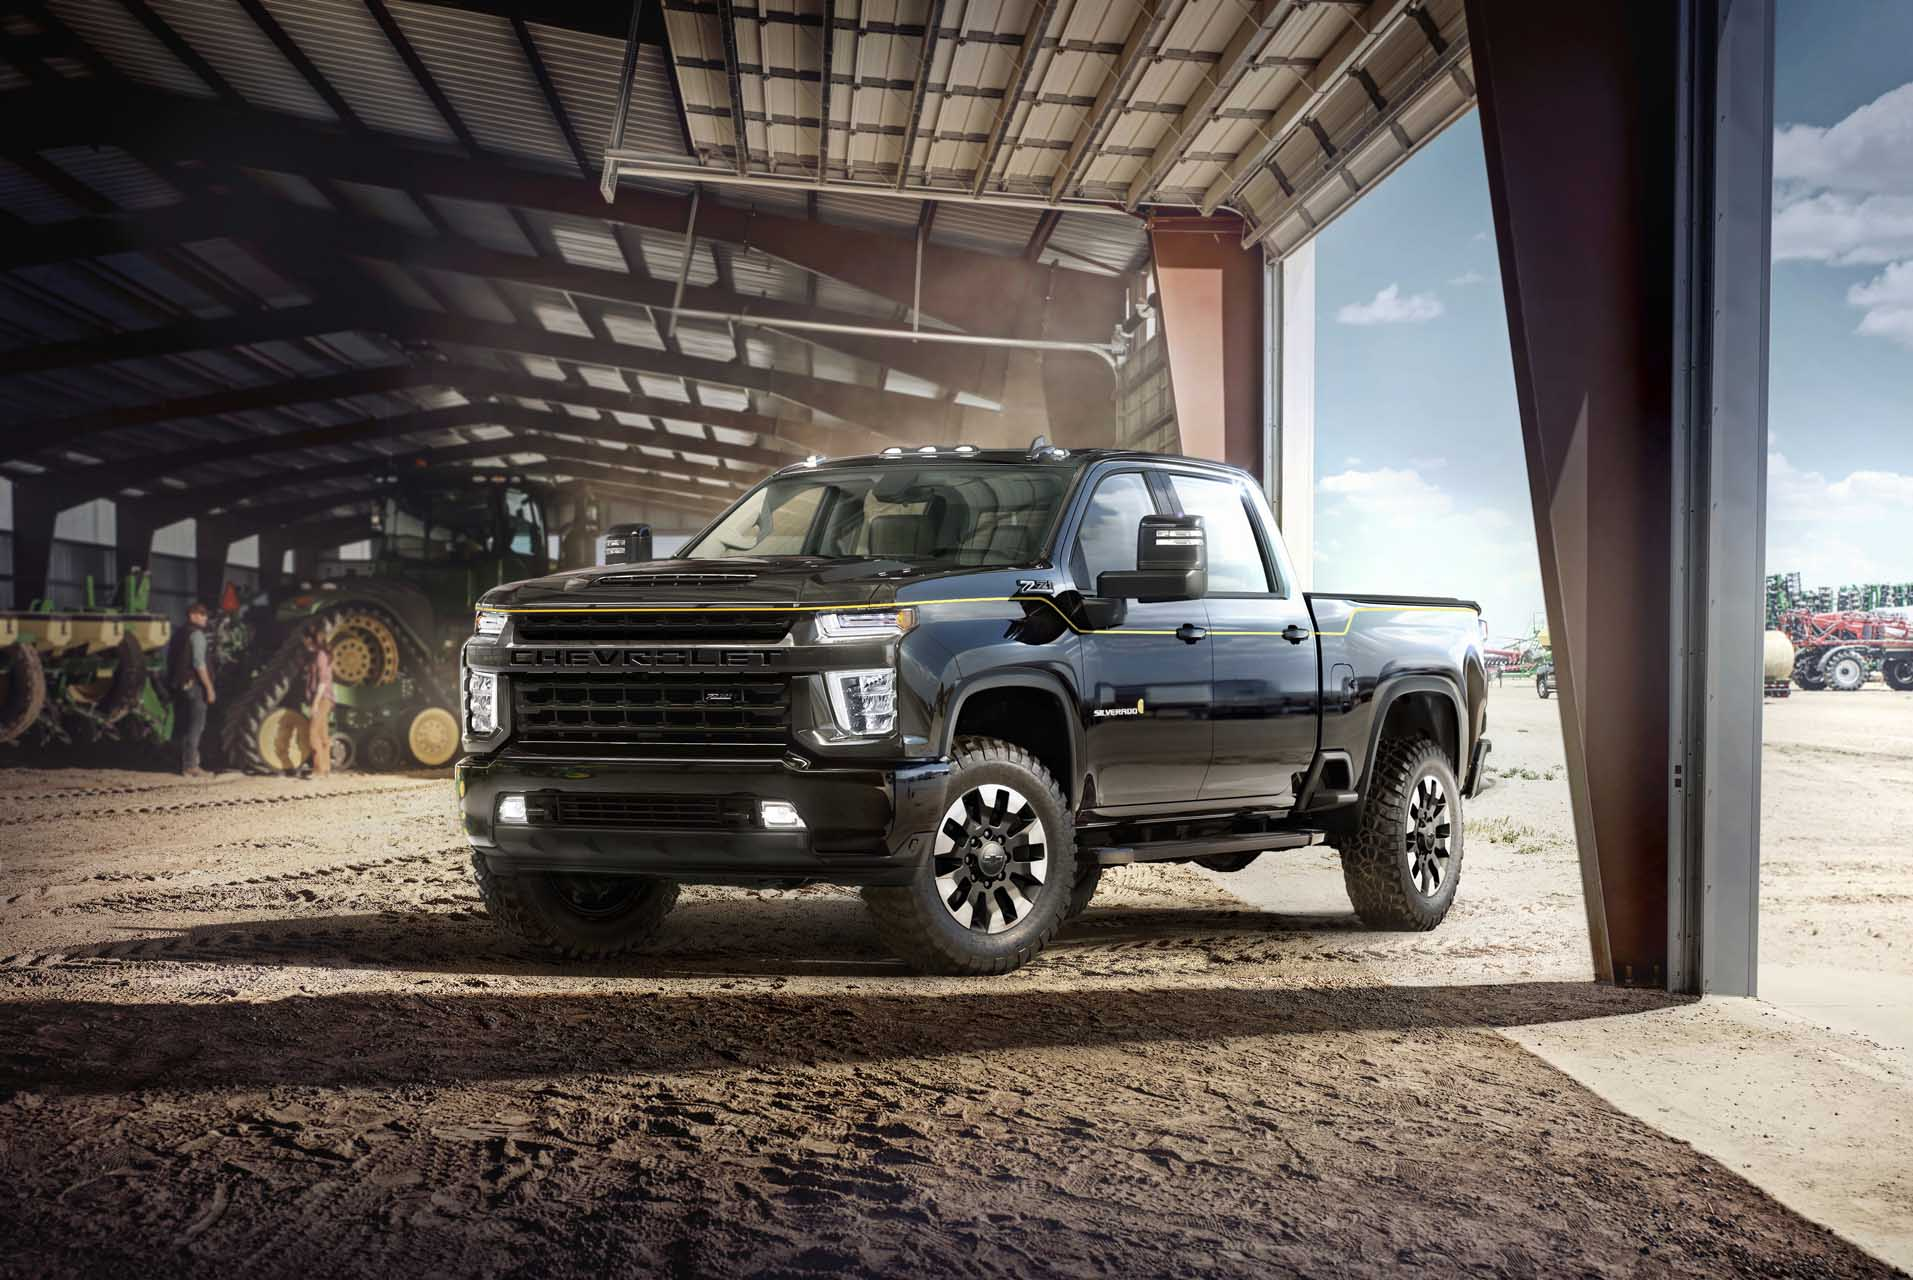 2021 Chevy Silverado 2021 Gmc Sierra Heavy Duty Pickups Adding Tony Tough New Versions